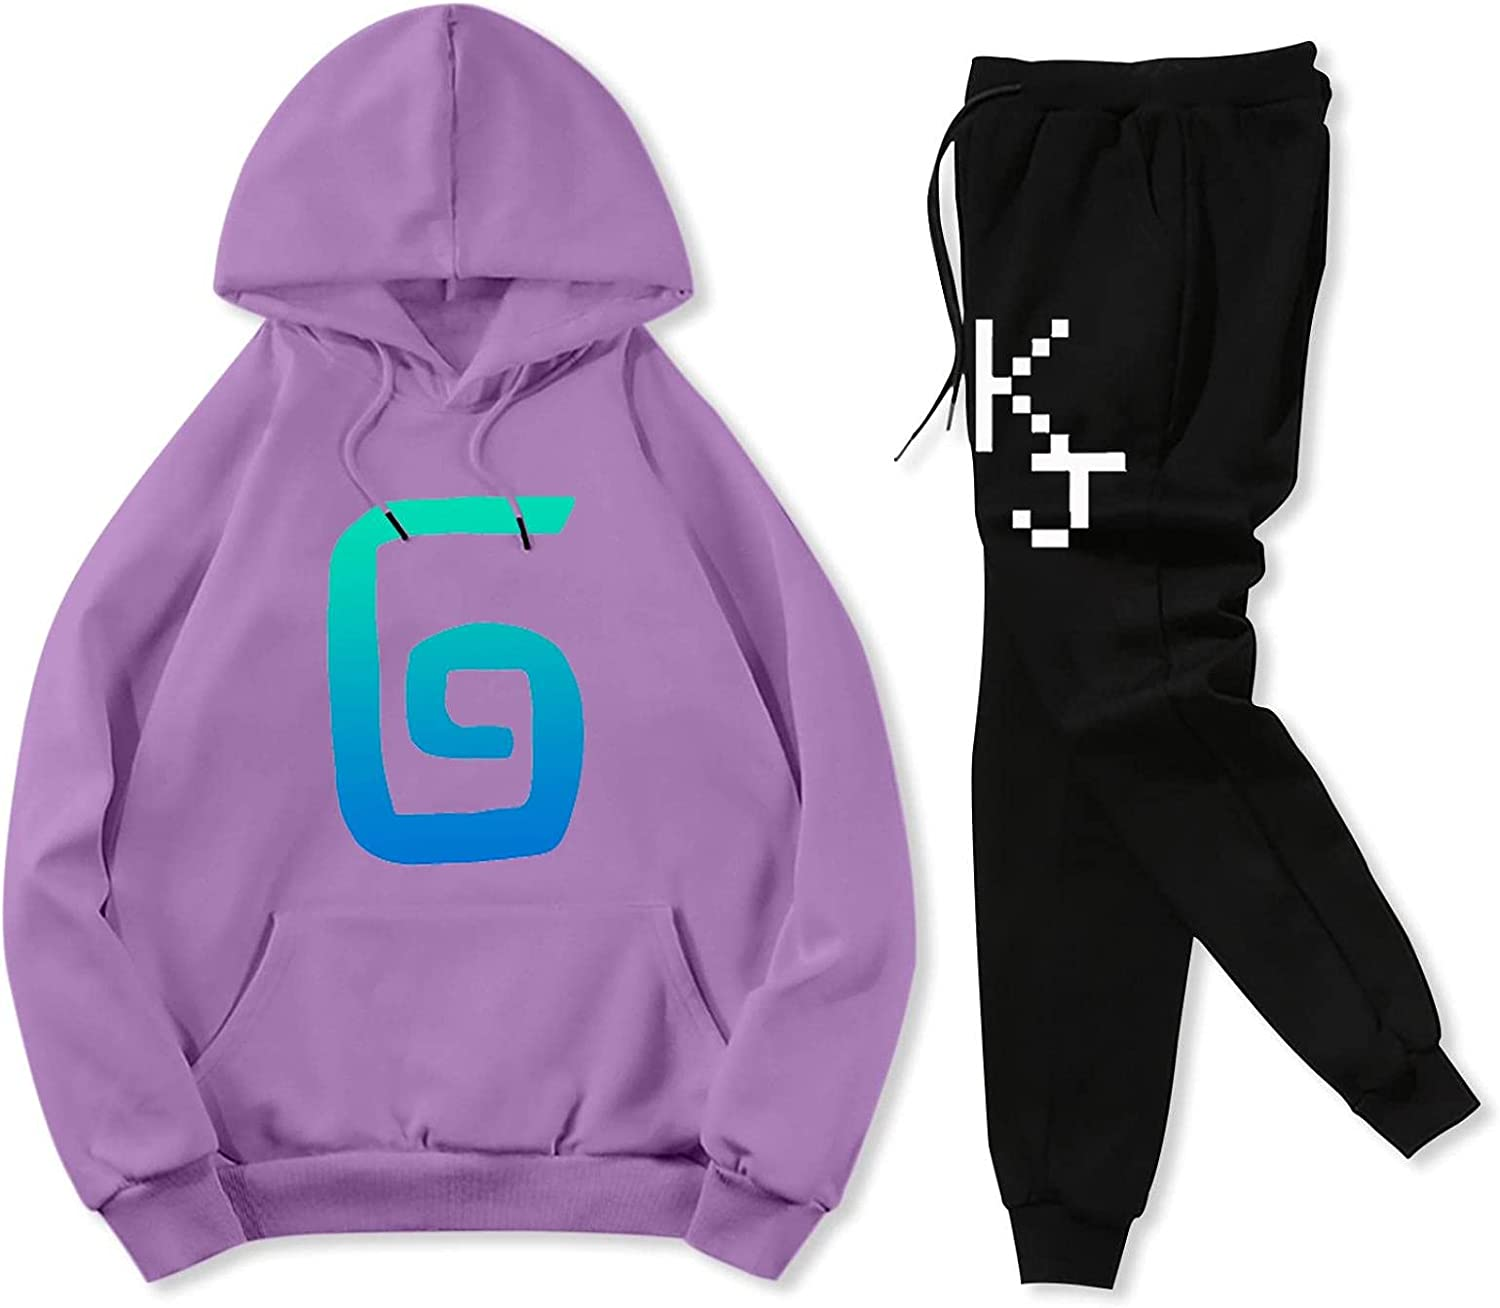 Youth Kar-l-Jaco-bs Fashion Pullover Sweatpants Suit and Sacramento Mall Max 81% OFF Hoodie